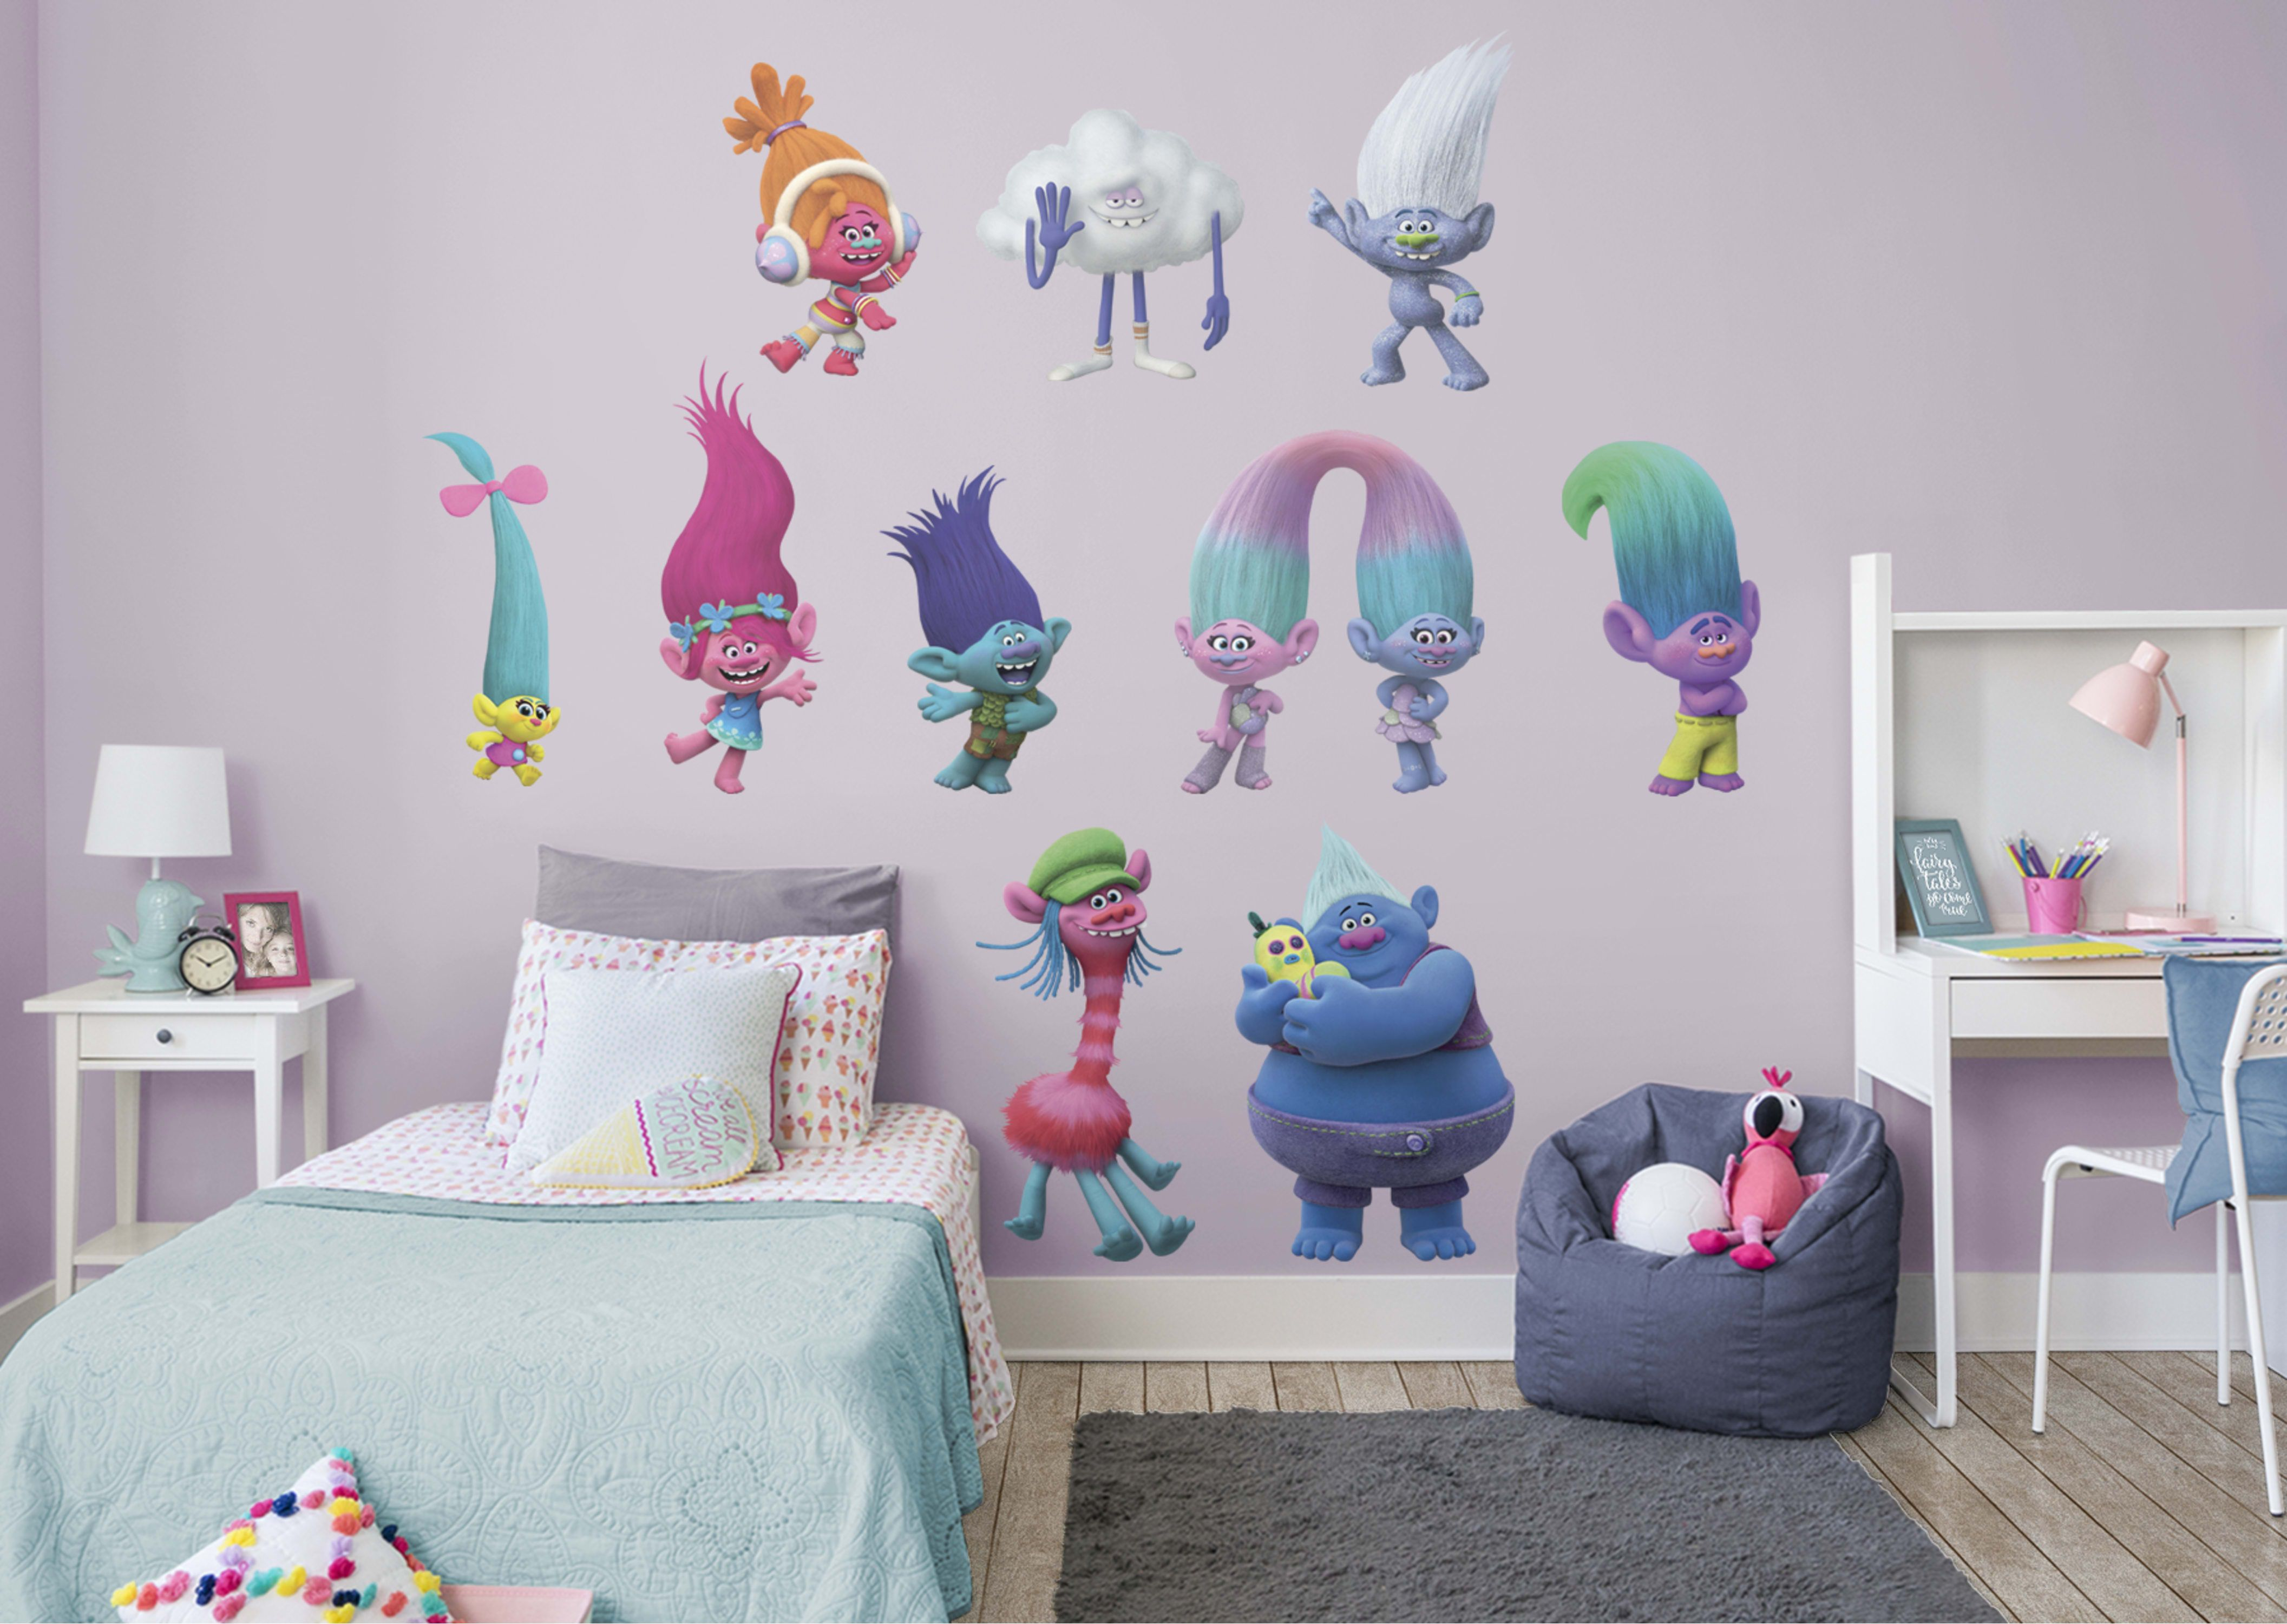 Trolls Movie Collection Fathead Wall Decal Big Kids Room Removable Wall Decals Girls Room Decor